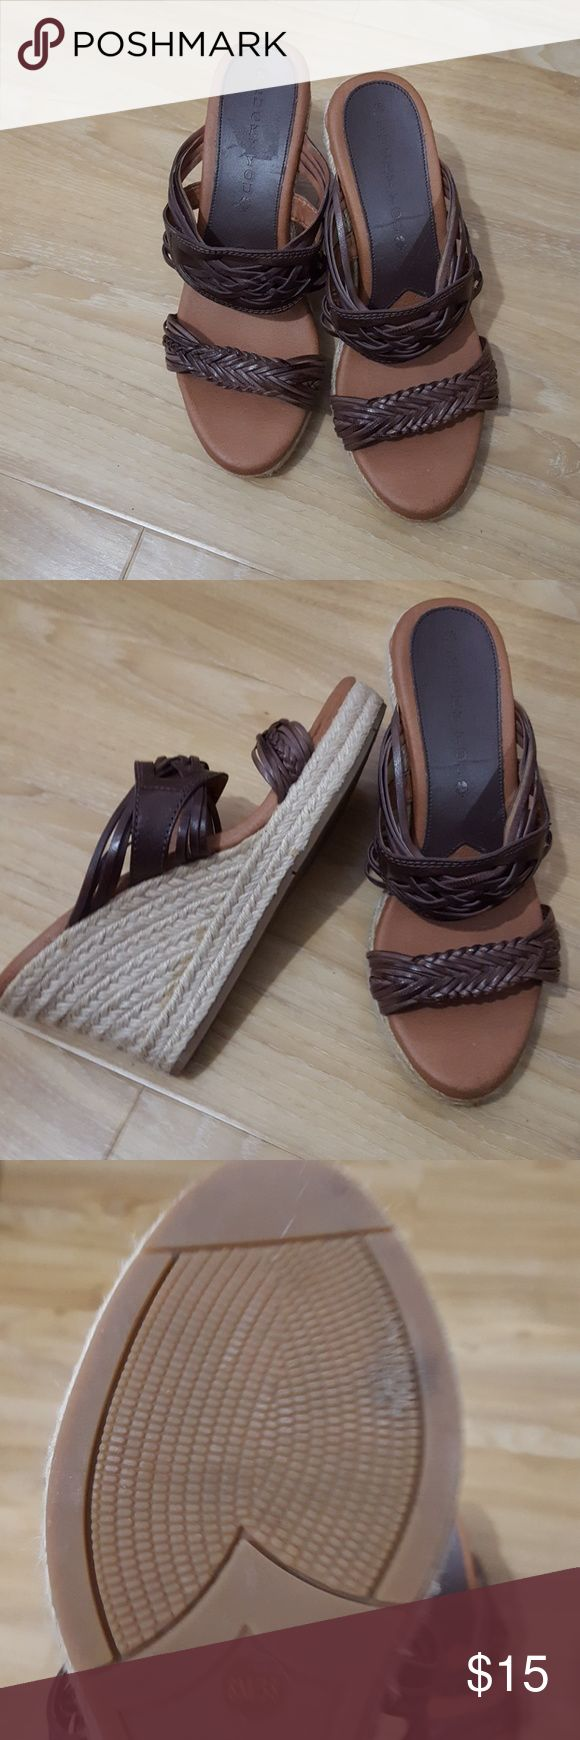 Lucky Brand Leather Espadrille Wedge Sandals 8 Only worn once. One of the braided leather strips has become detatched from its backing, but not noticeable when worn. See picture #4. Also some glue is visible on espadrille, but this happens to all espadrille type shoes. Lucky Brand Shoes Espadrilles